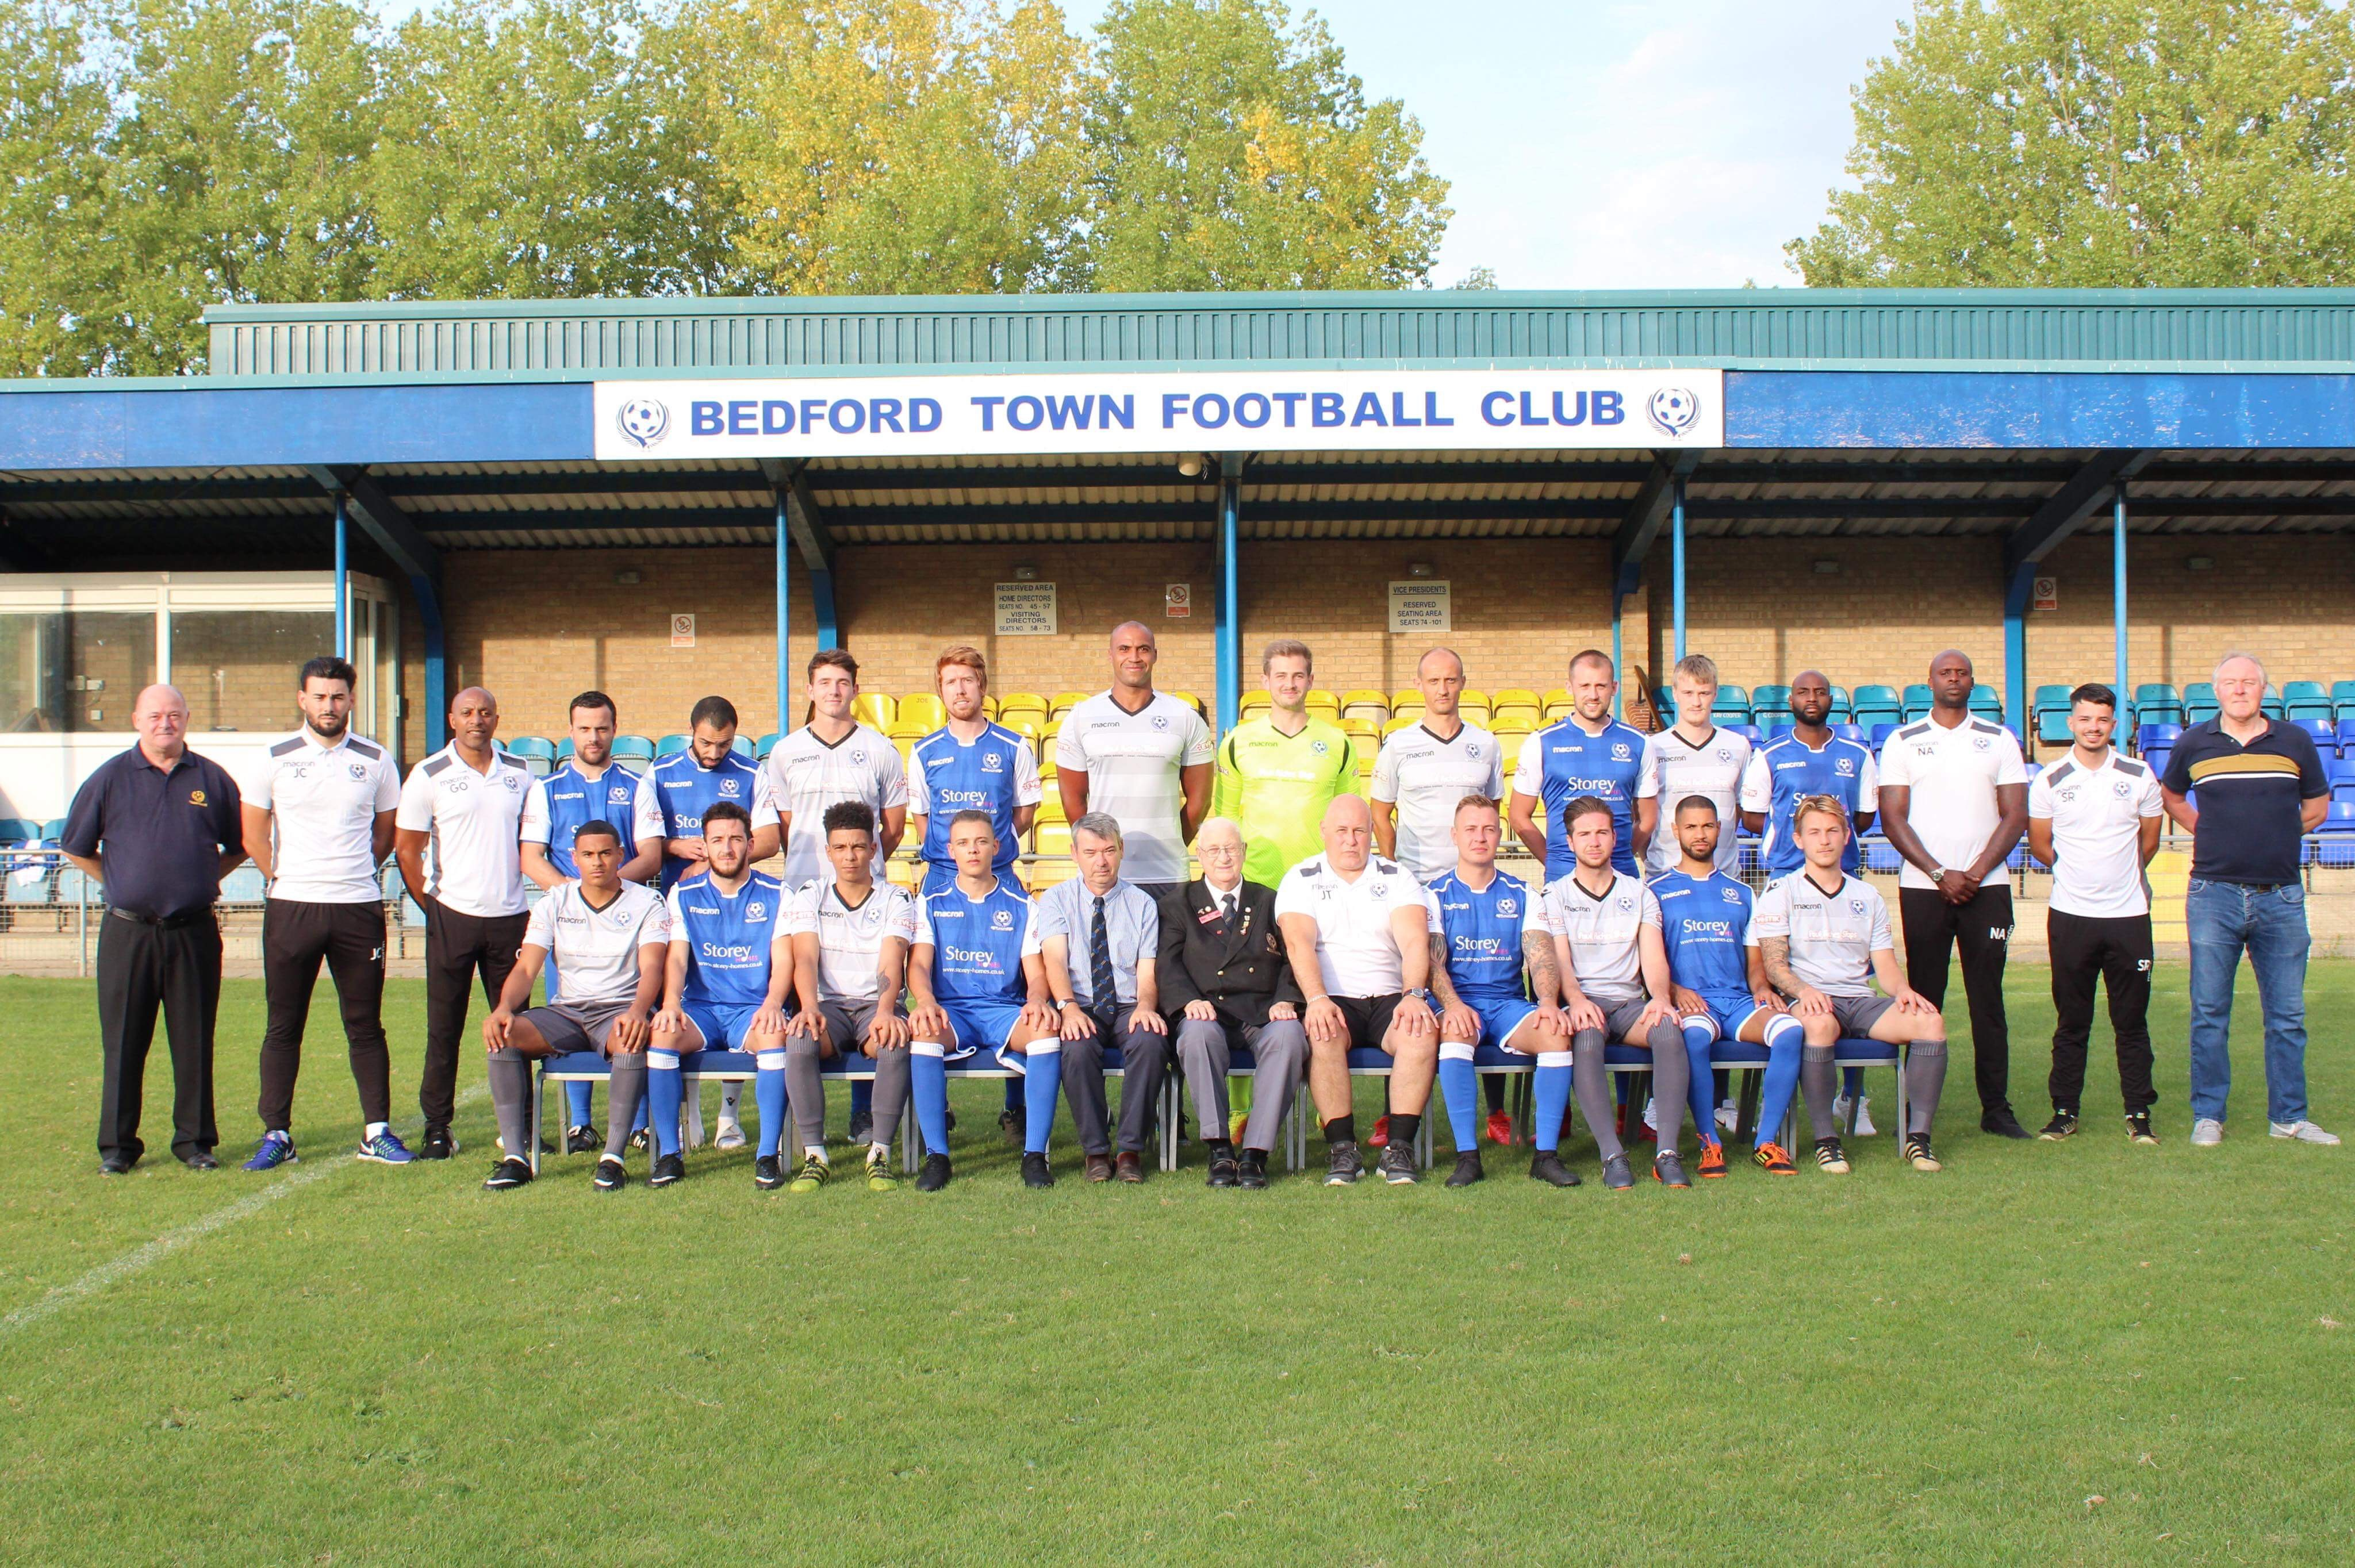 Bedford Town Football Club 7 Vs 0 Aldershot Town Fc 18 December